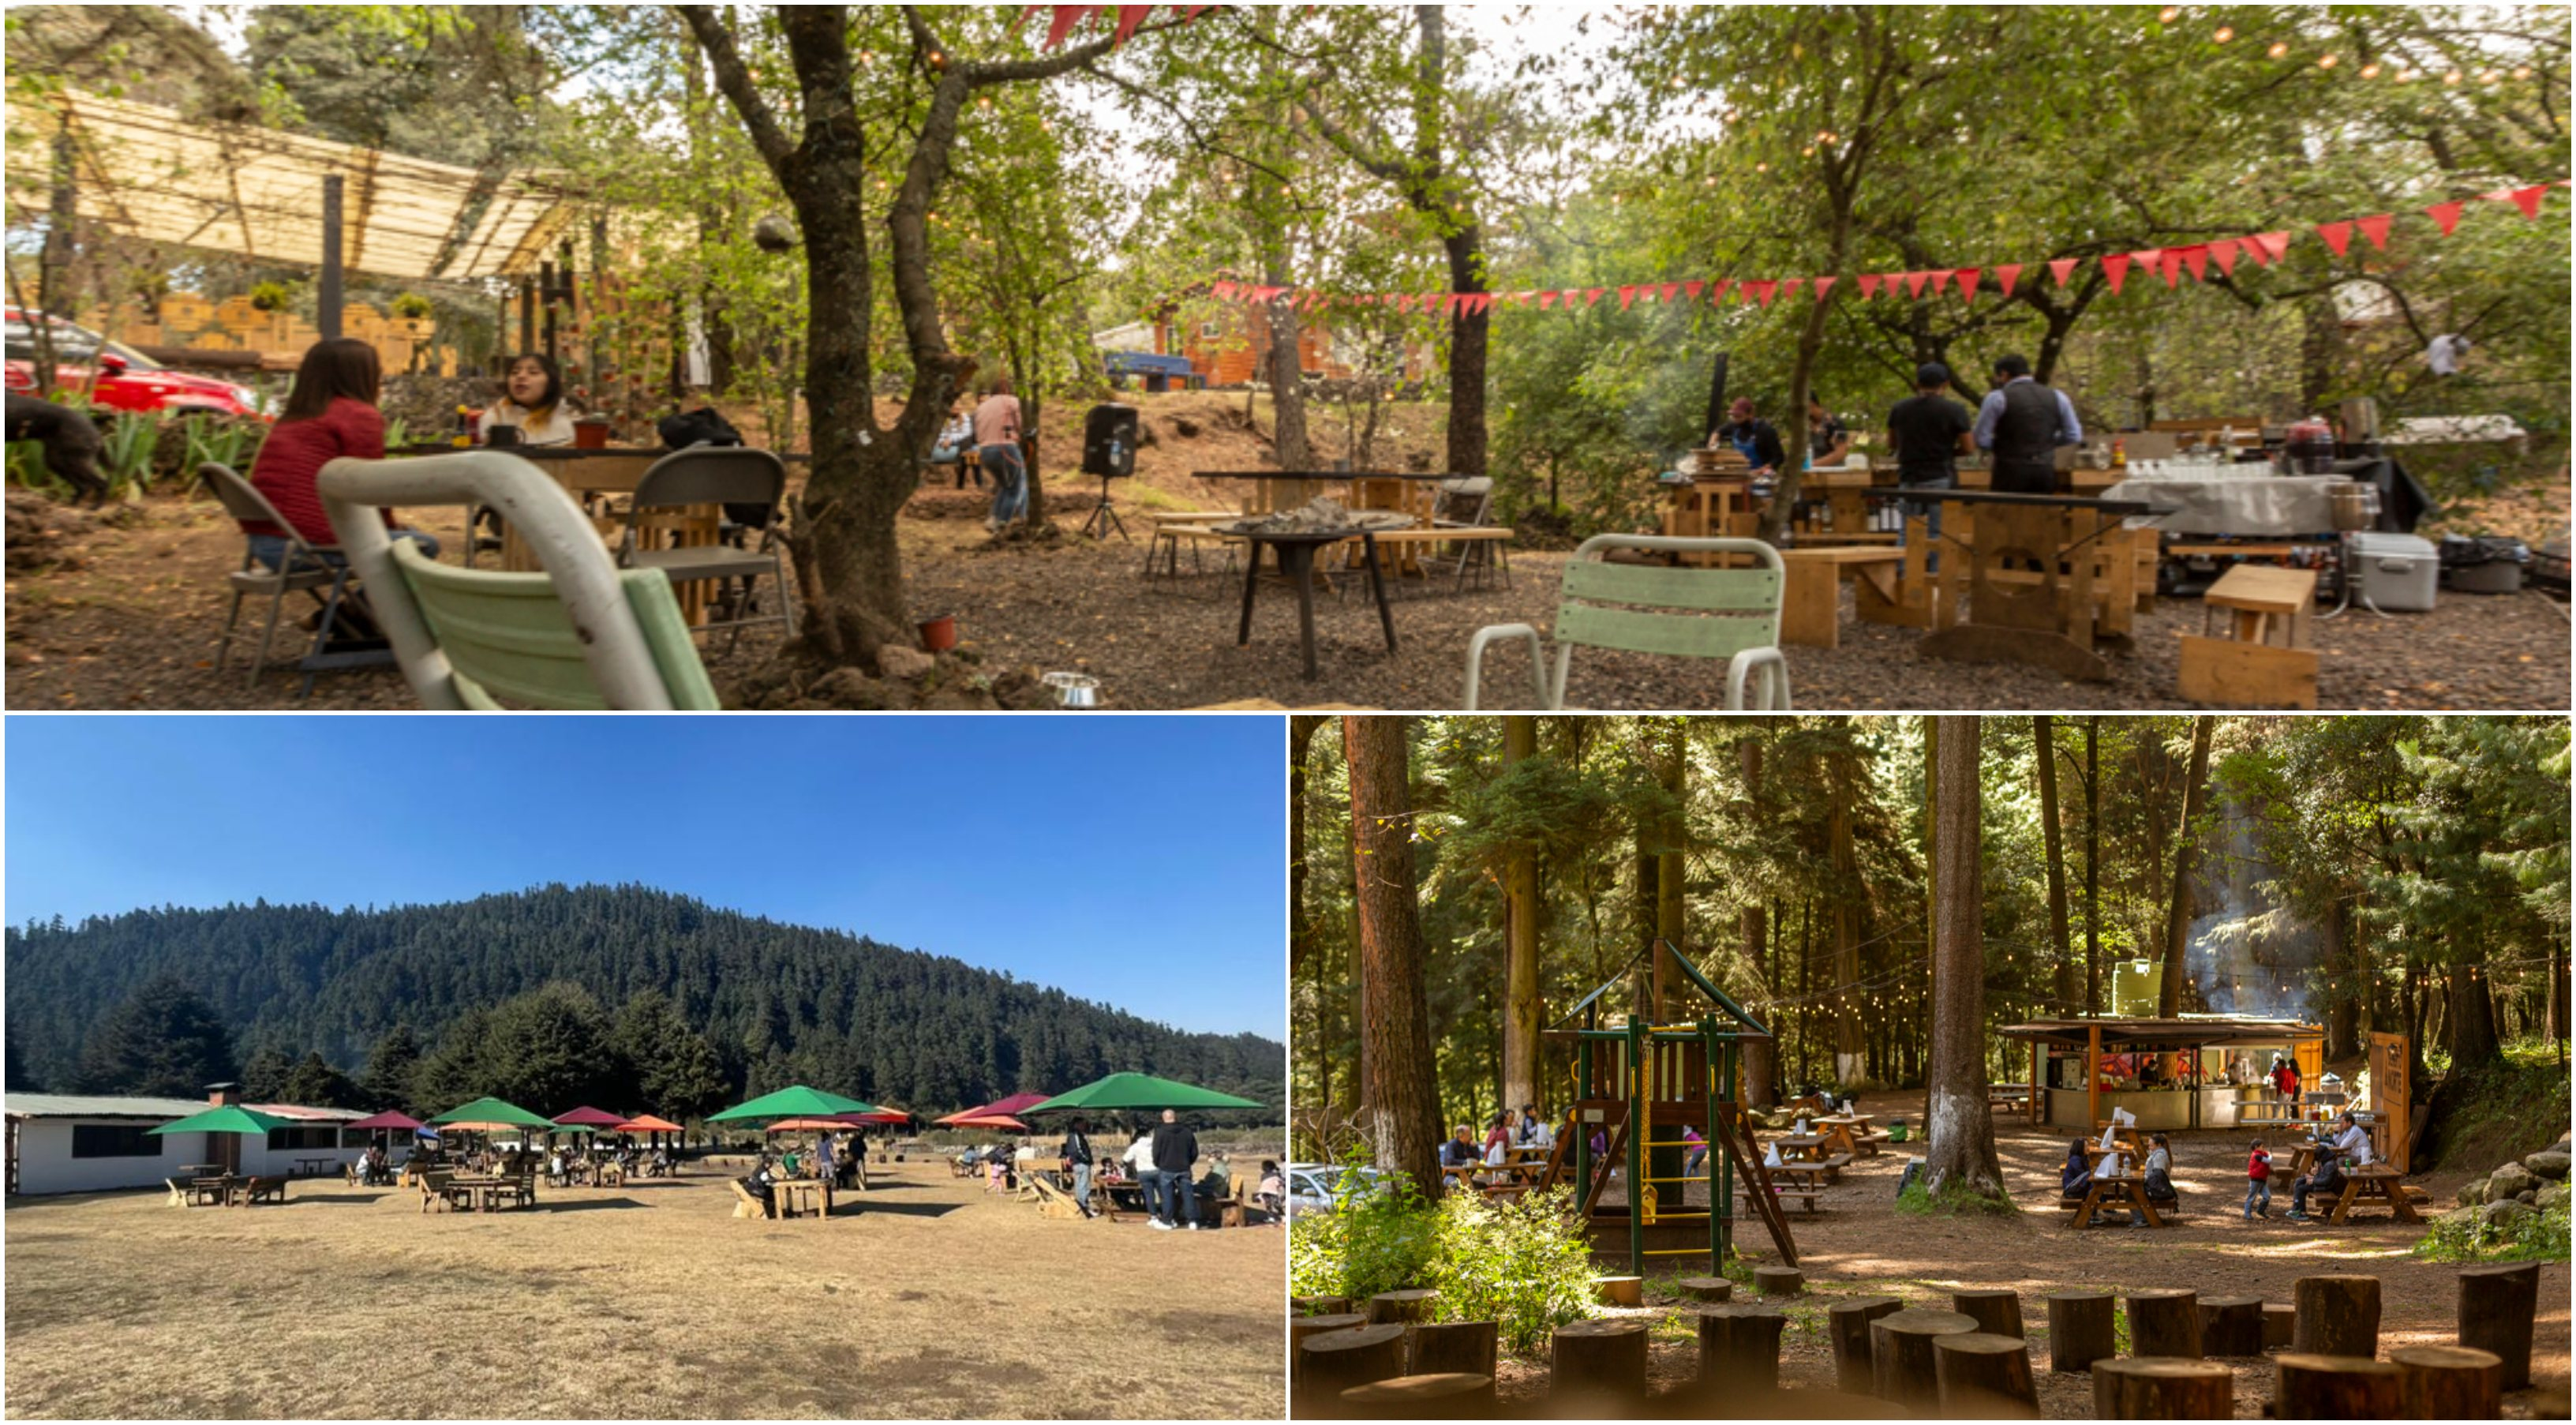 ¡Come en el bosque! Restaurantes escondidos entre árboles